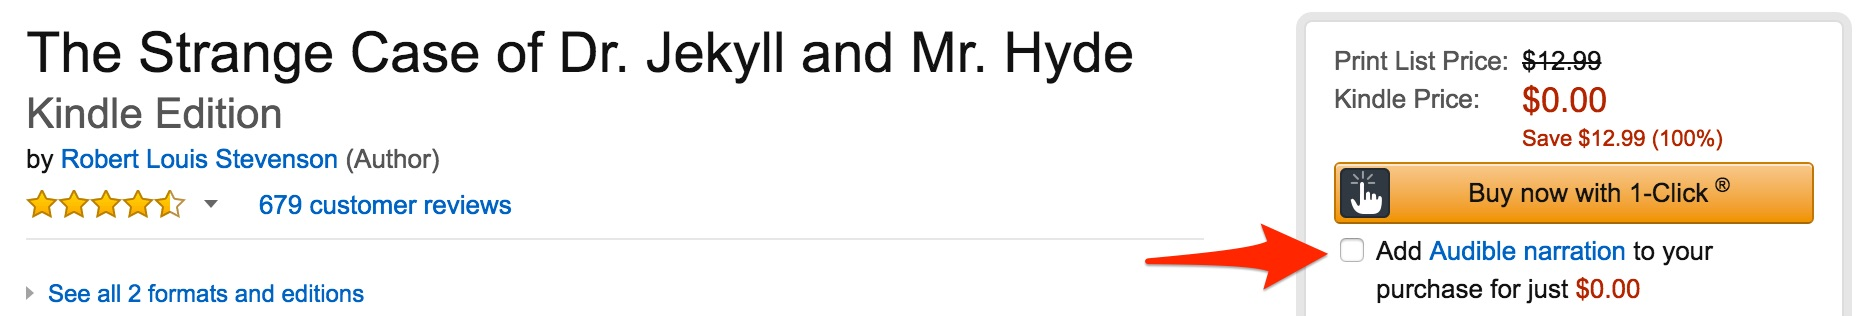 the_strange_case_of_dr__jekyll_and_mr__hyde